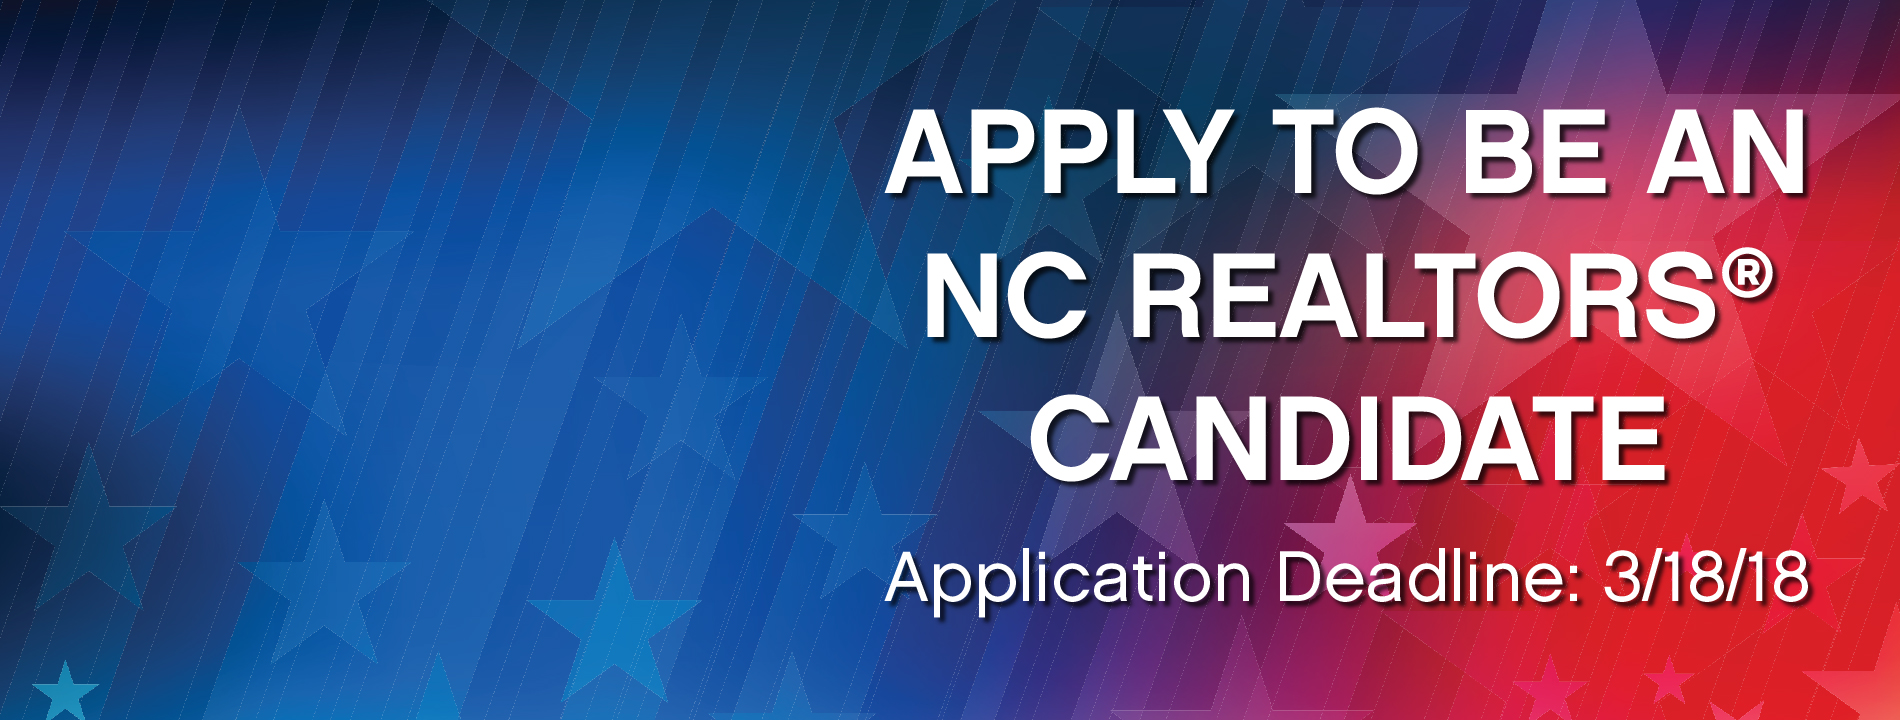 Apply to be an NC REALTORS® Candidate. Application Deadline: 3/16/18